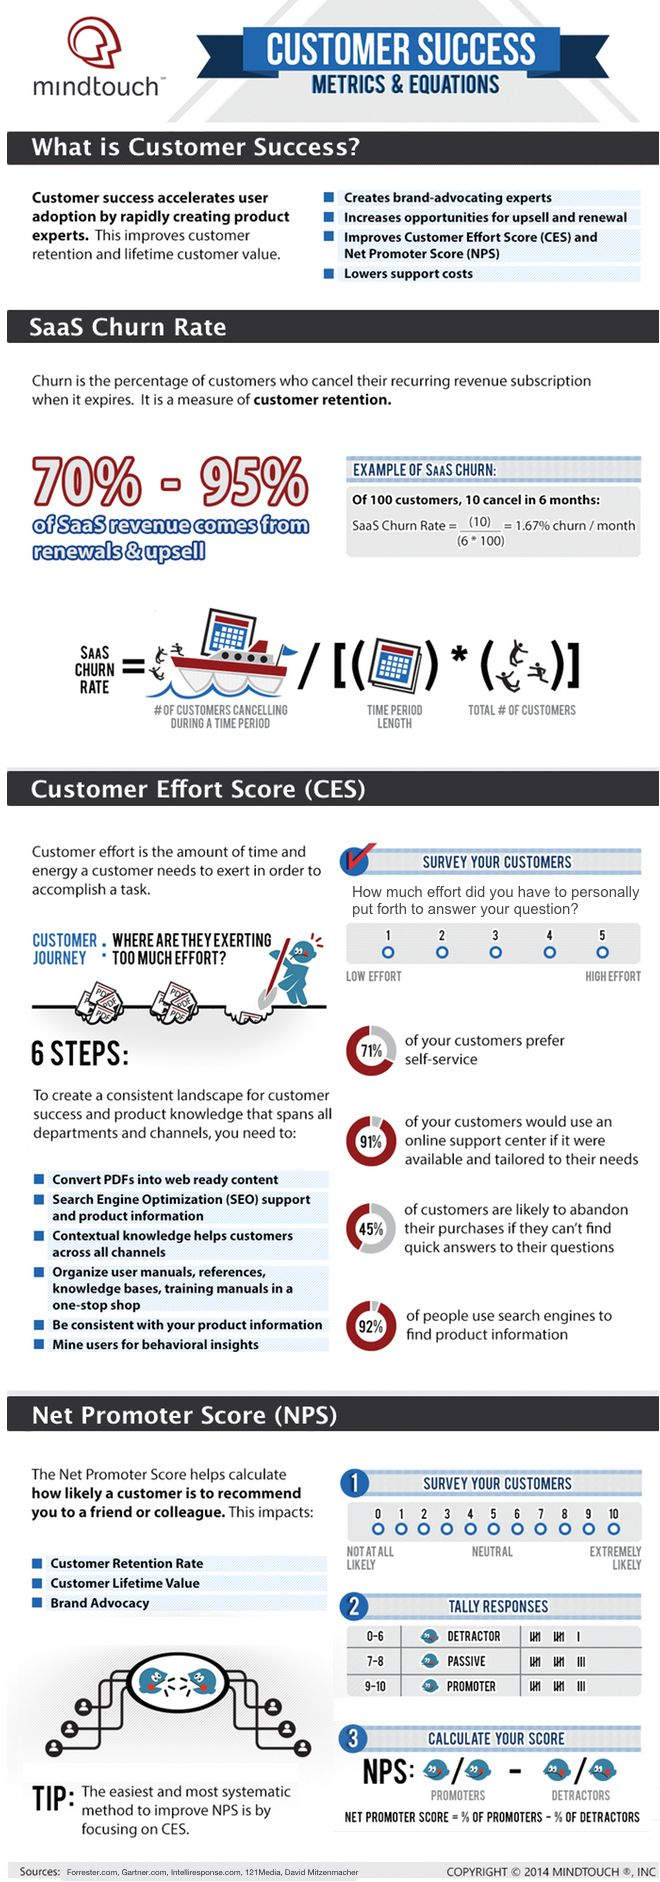 Customer Success infographic includes Saas churn rate, Customer Effort Score, and Net Promoter Score